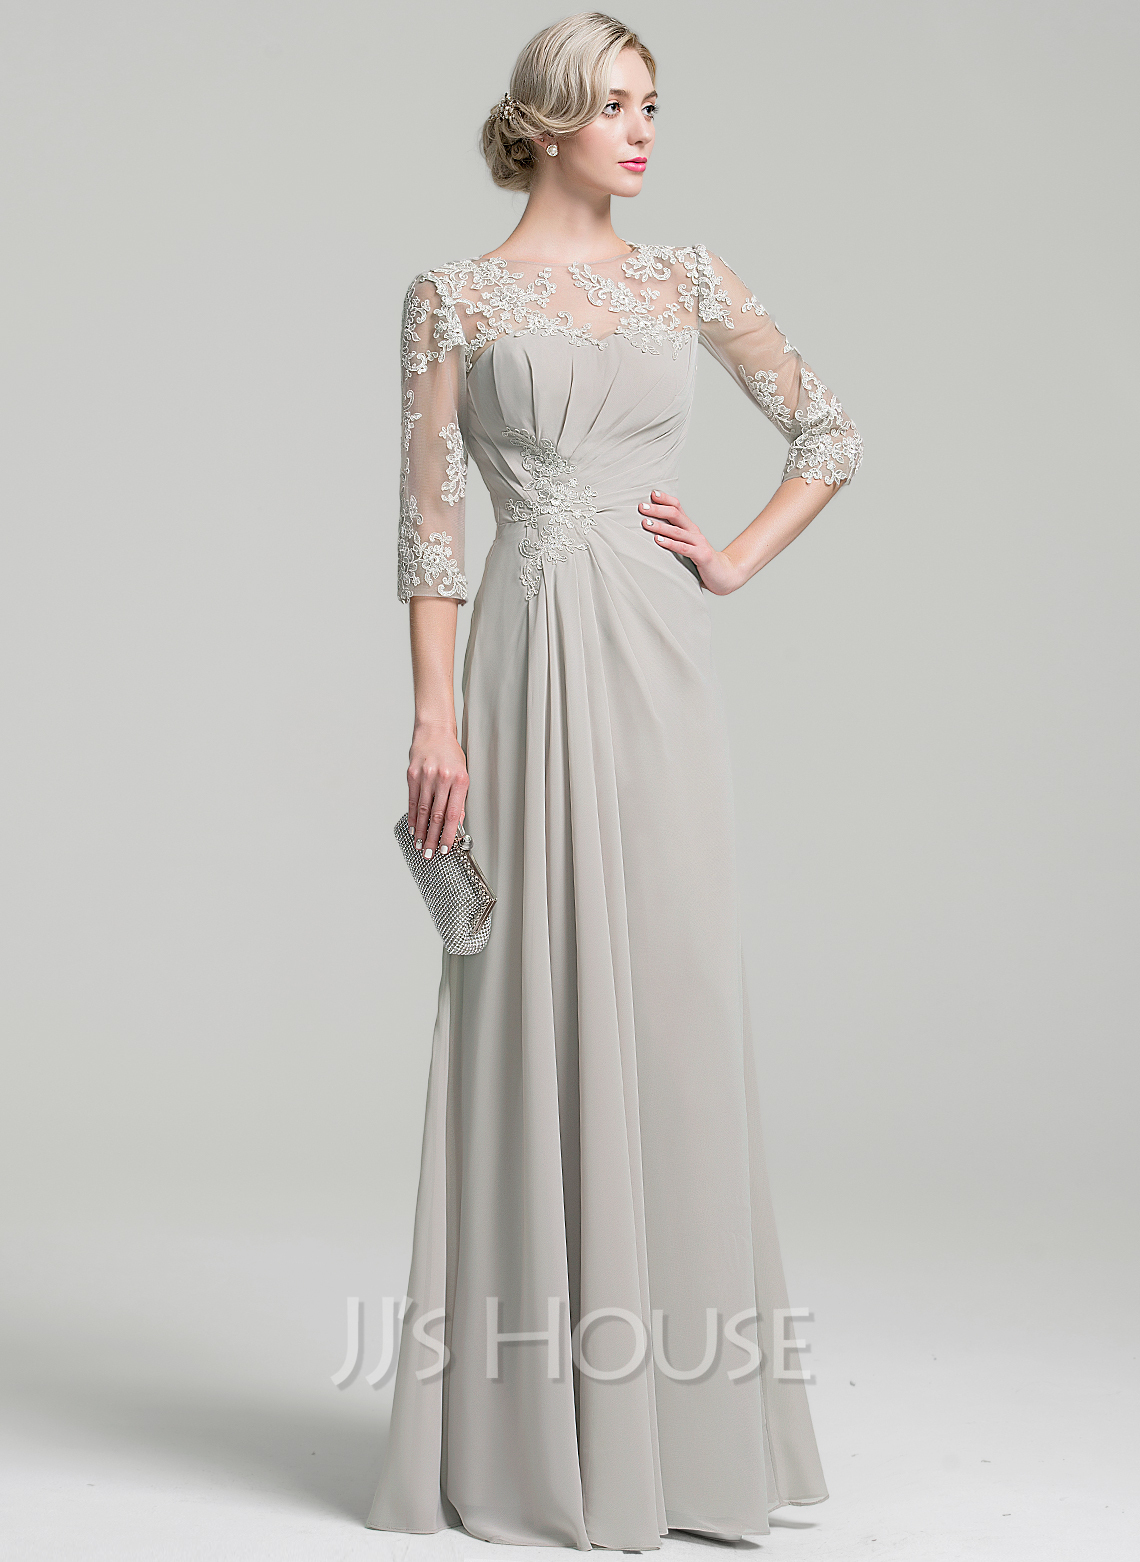 a442d93c166d39 Scoop Neck Floor-Length Chiffon Mother of the Bride Dress With Ruffle. Loading  zoom